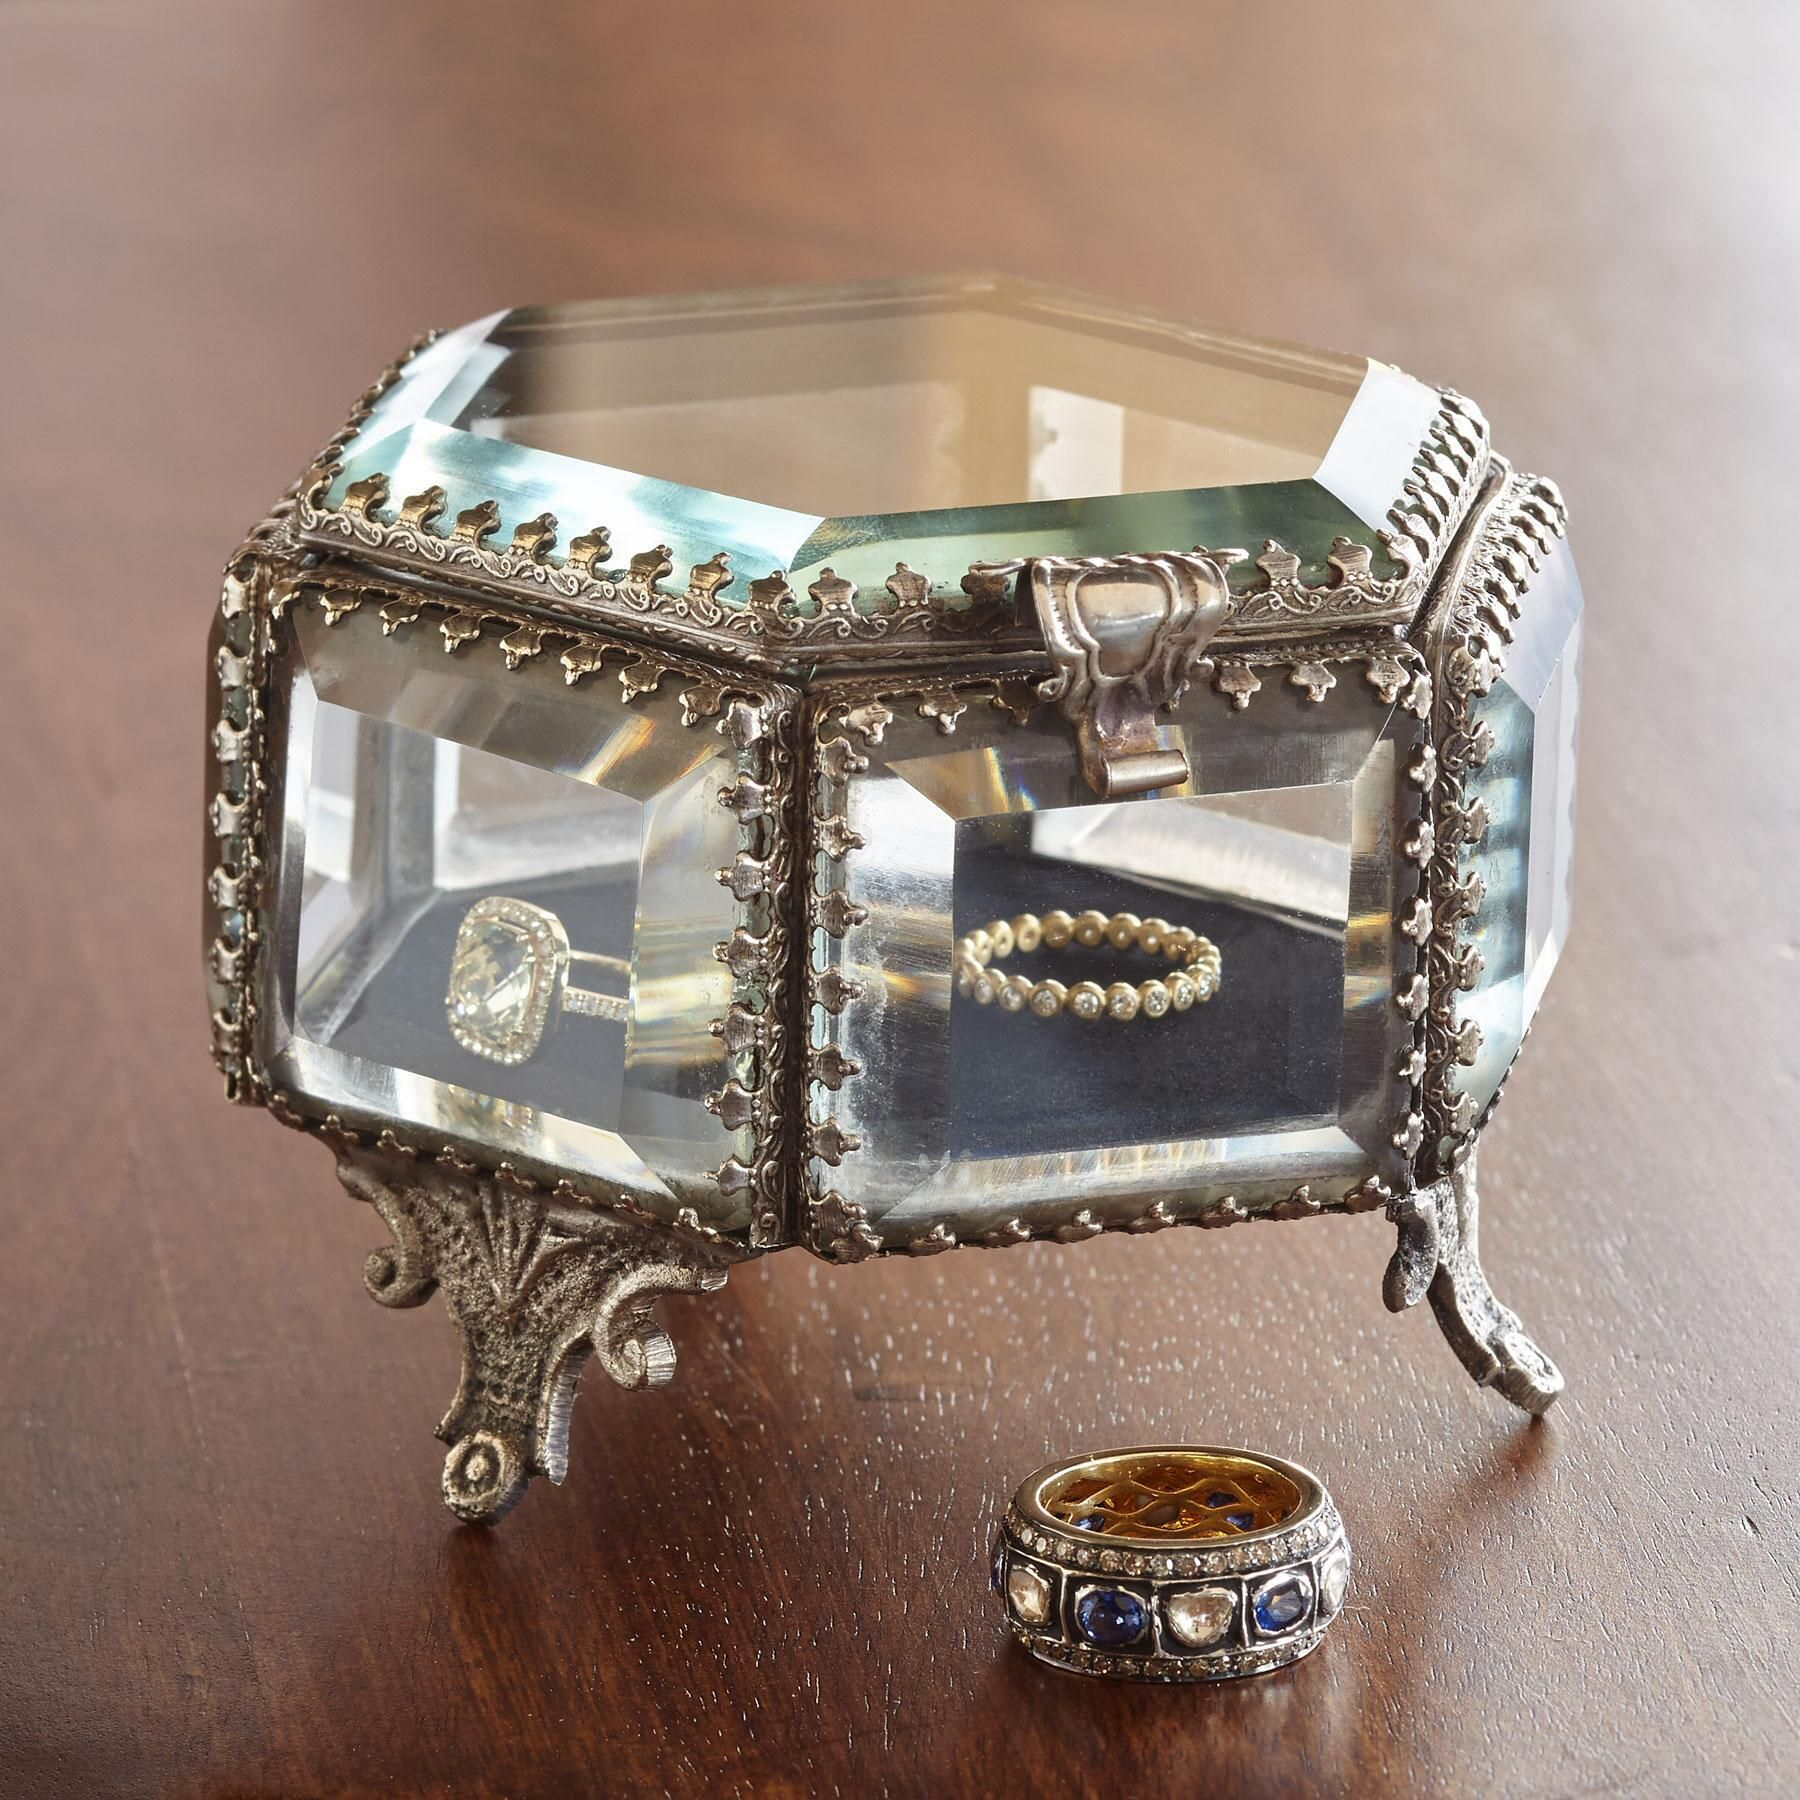 "HEXAGON JEWELRY BOX -- Beveled glass trimmed with ornate brass sits atop gracefully scrolled legs, turning jewelry into a dressing table display. Lined with velvet, it's a handcrafted ode to a bygone era of glamor. 4""W x 4""D x 2-3/4""H."